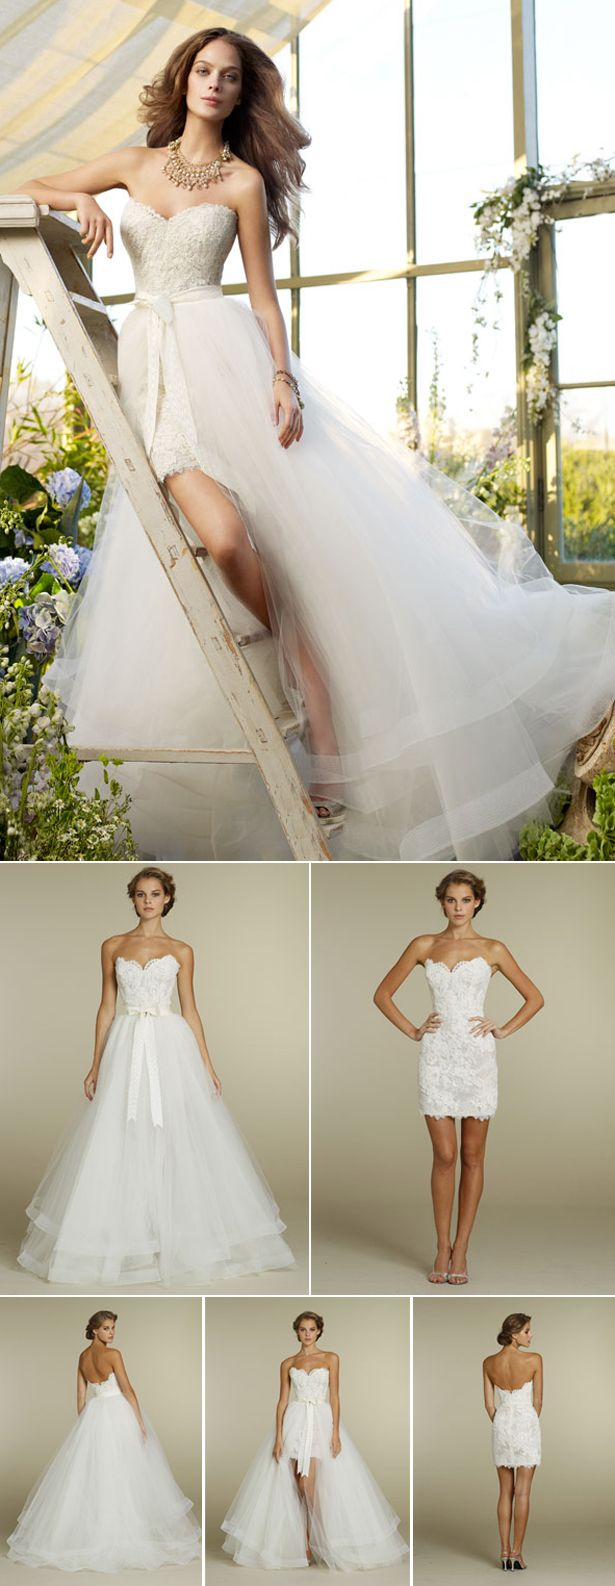 Convertible Two in One Wedding Dresses | Pinterest | Confetti ...